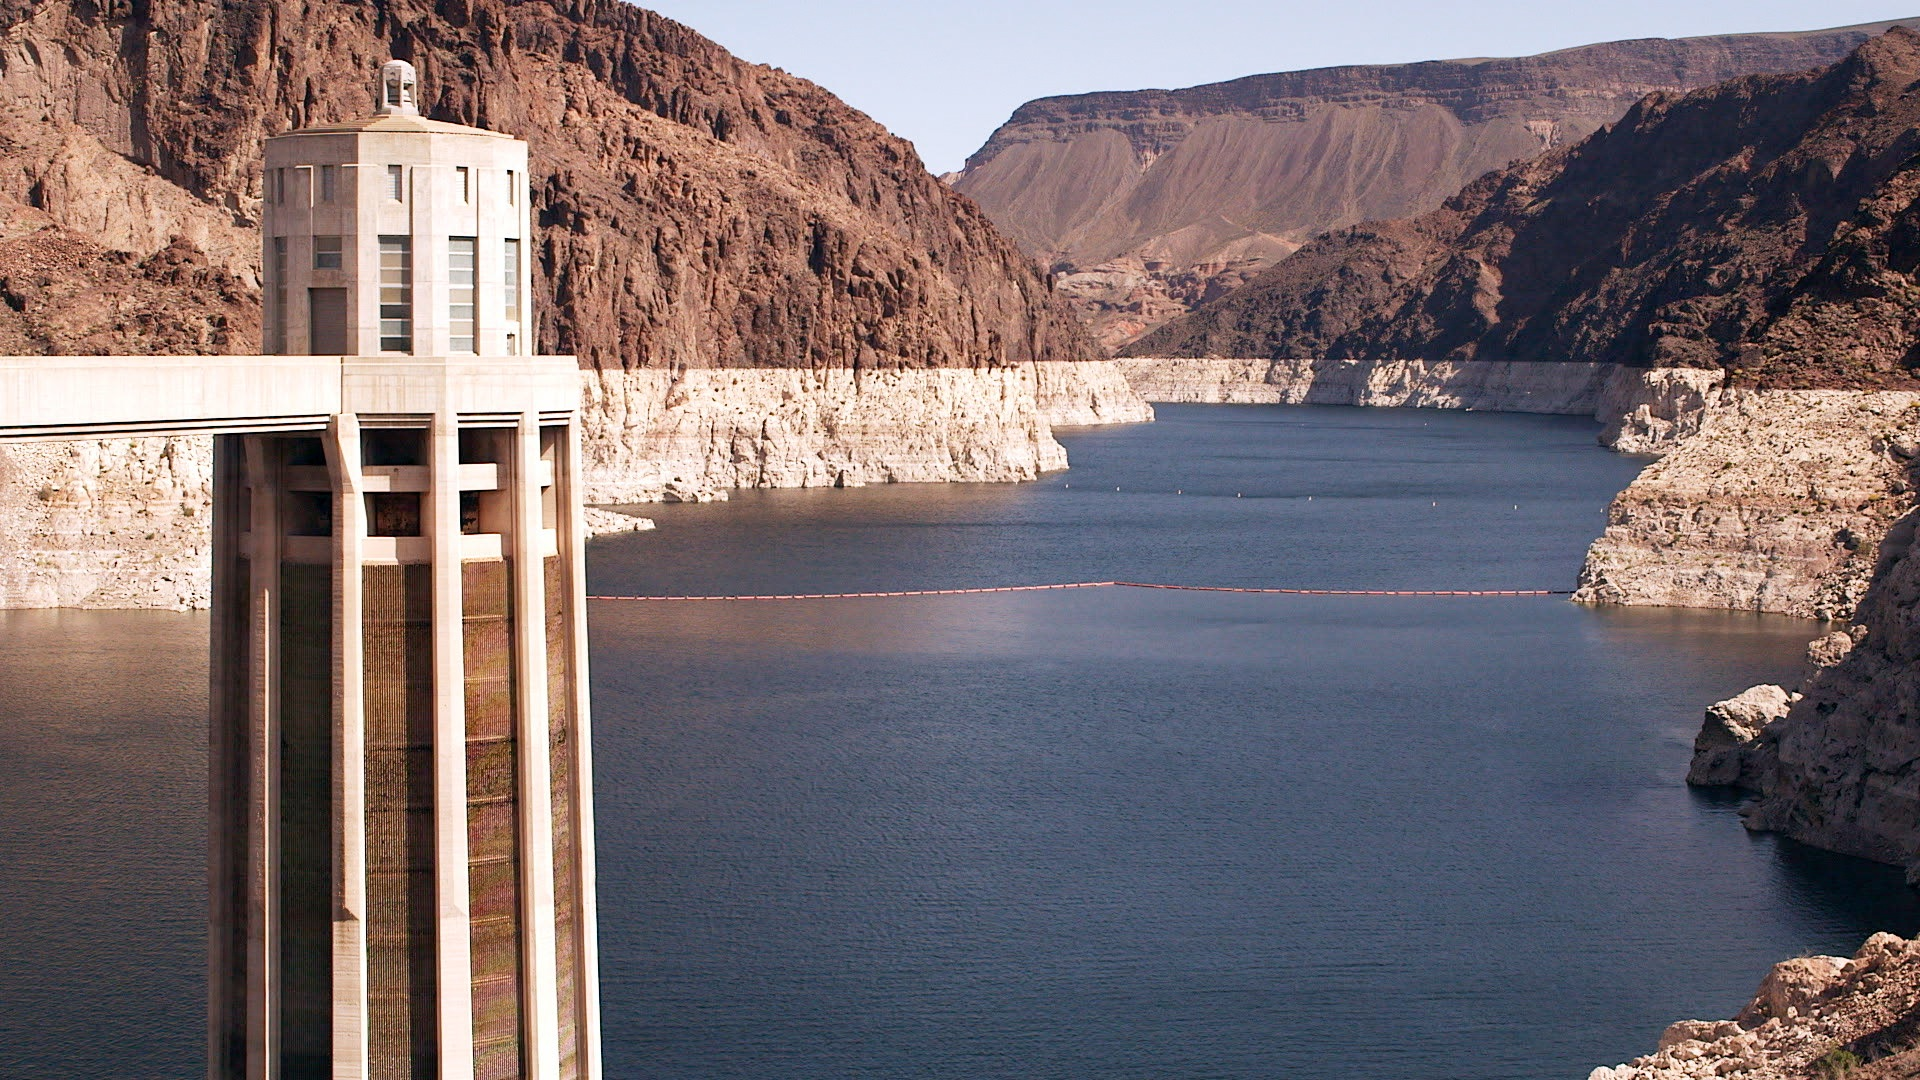 5 Facts You Need To Know About Lake Meads Water Crisis Hoover Dam Power Plant Diagram